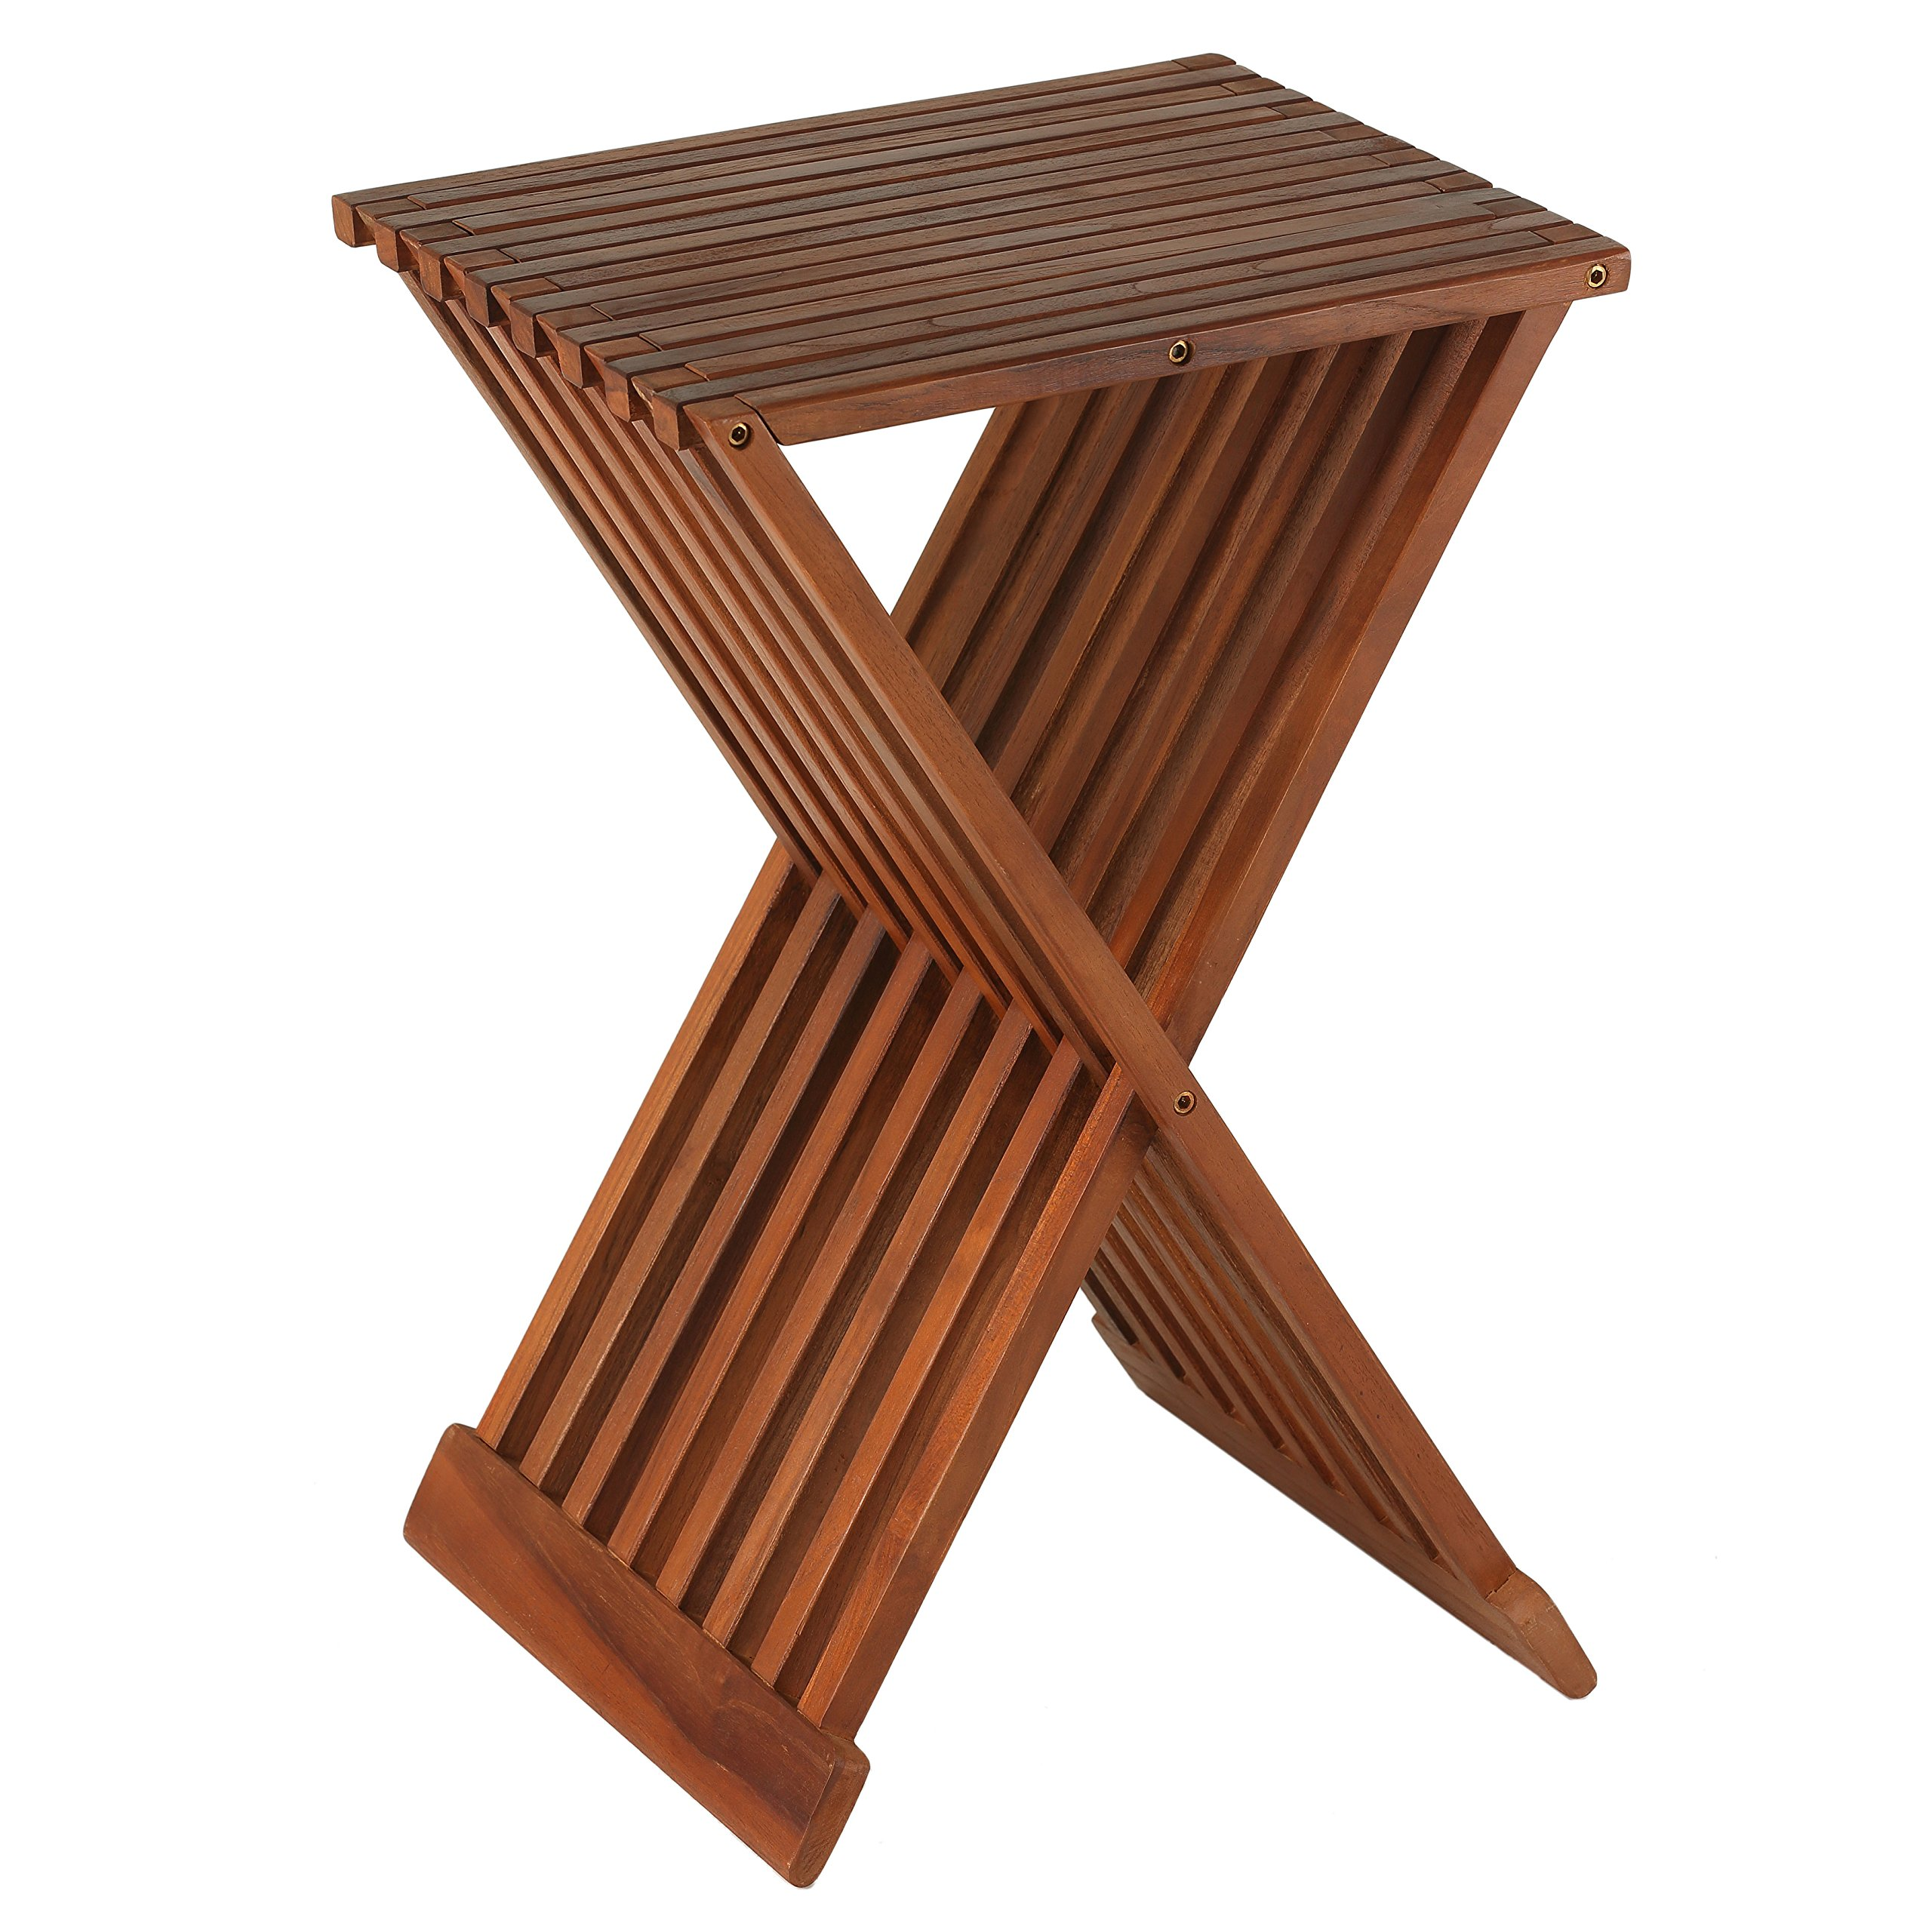 Bare Decor Solid Teak Wood 24-inch High Leaf Folding Counterstool by Bare Decor